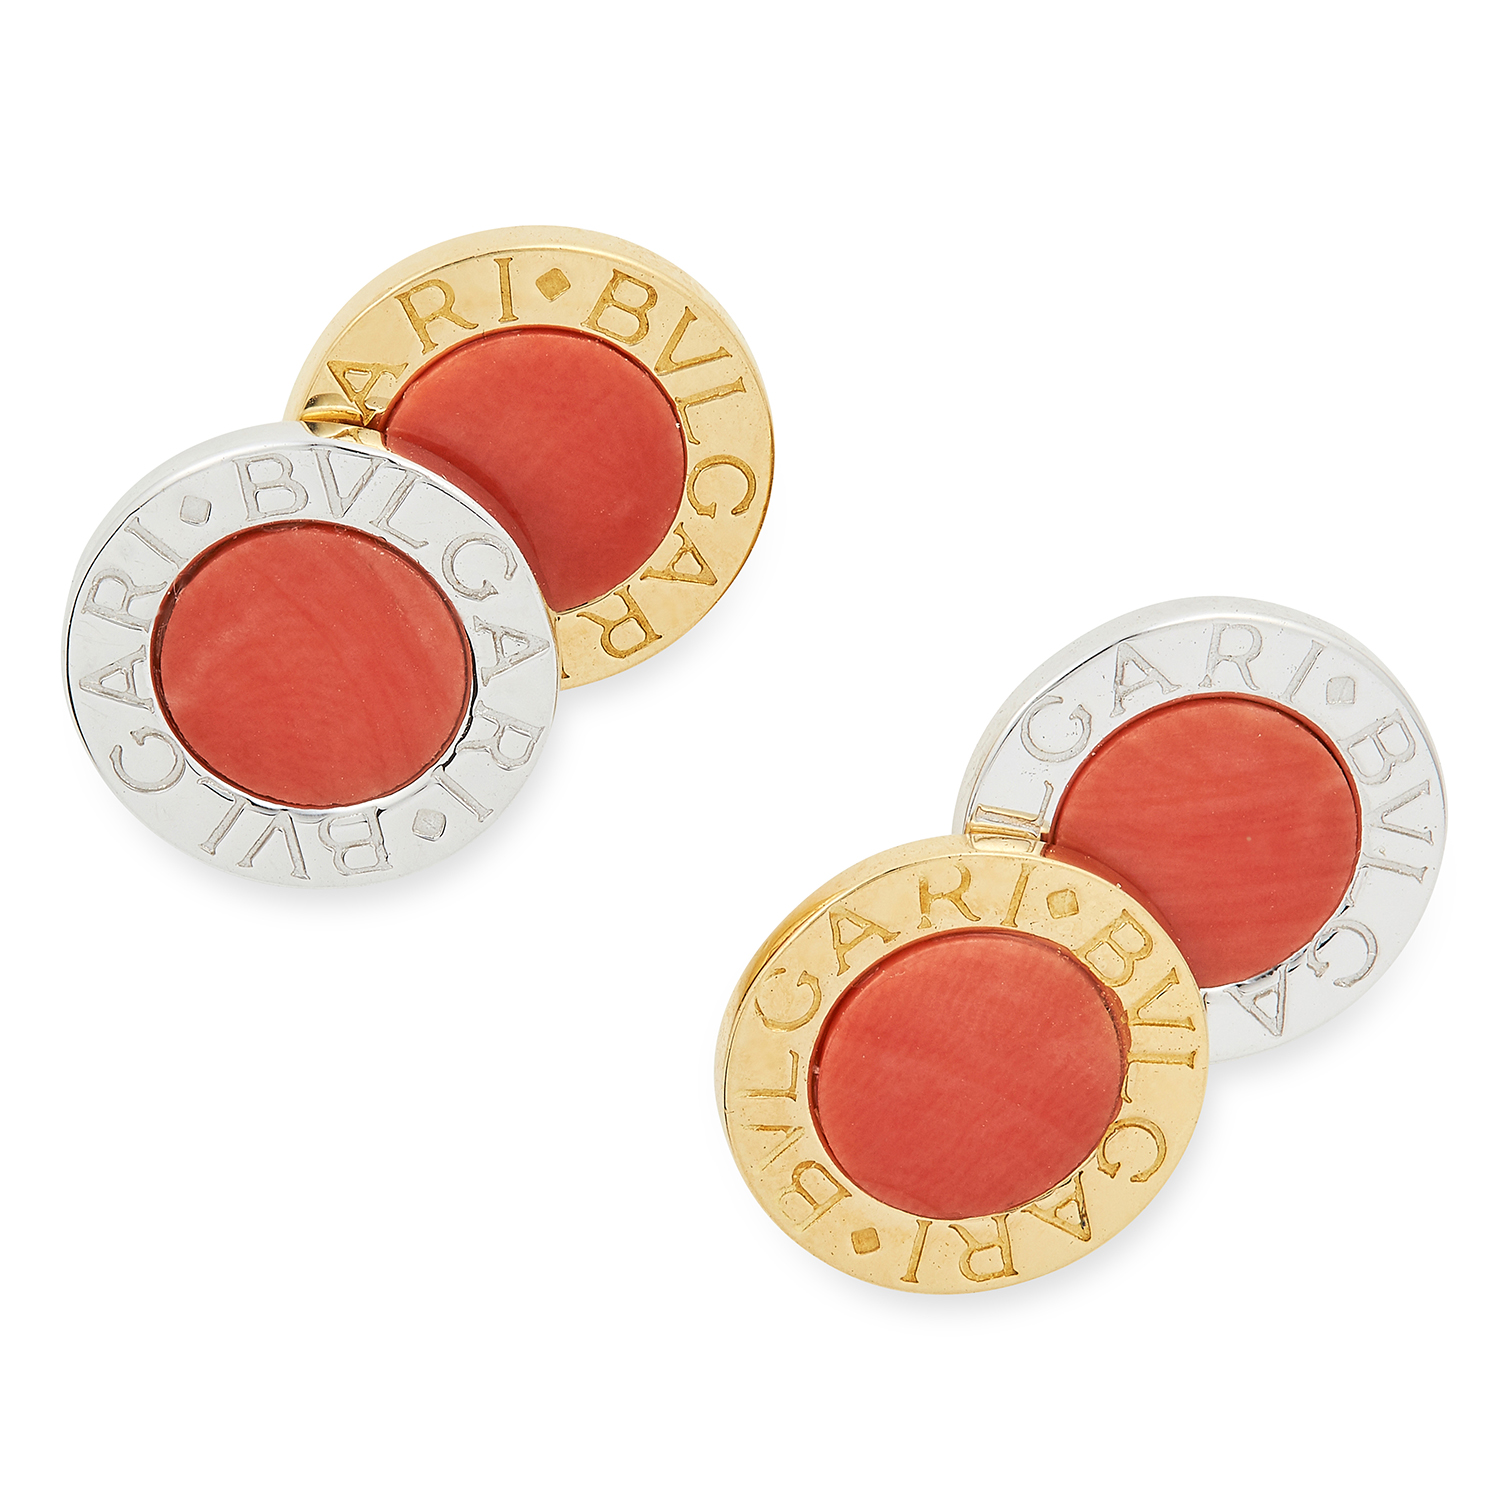 CORAL CUFFLINKS BY BULGARI each circular face set with a polished piece of coral, signed BVLGARI,